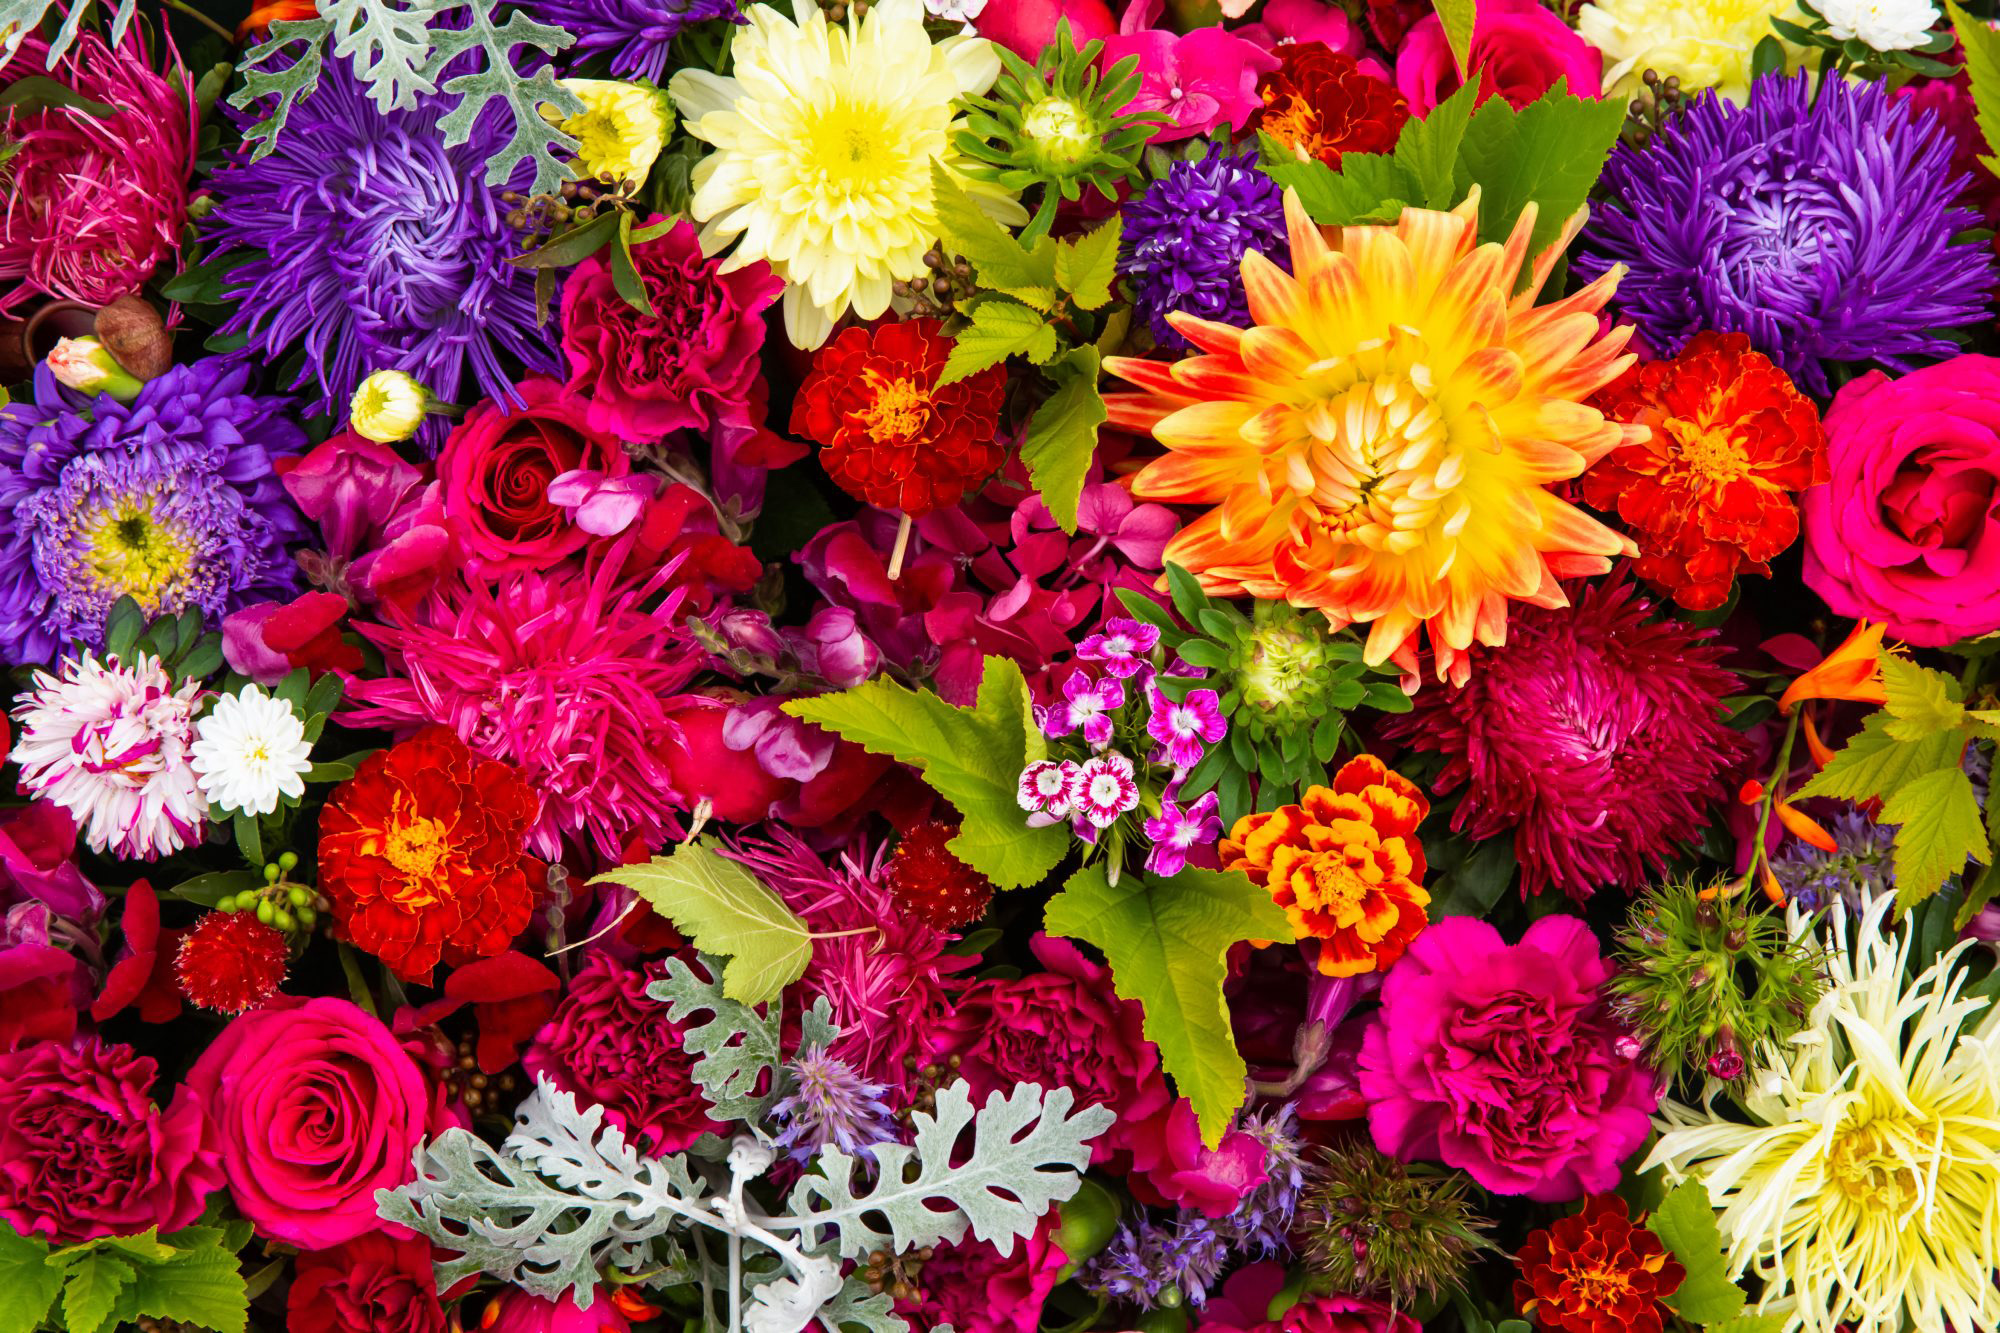 Colorful Flower Grouping